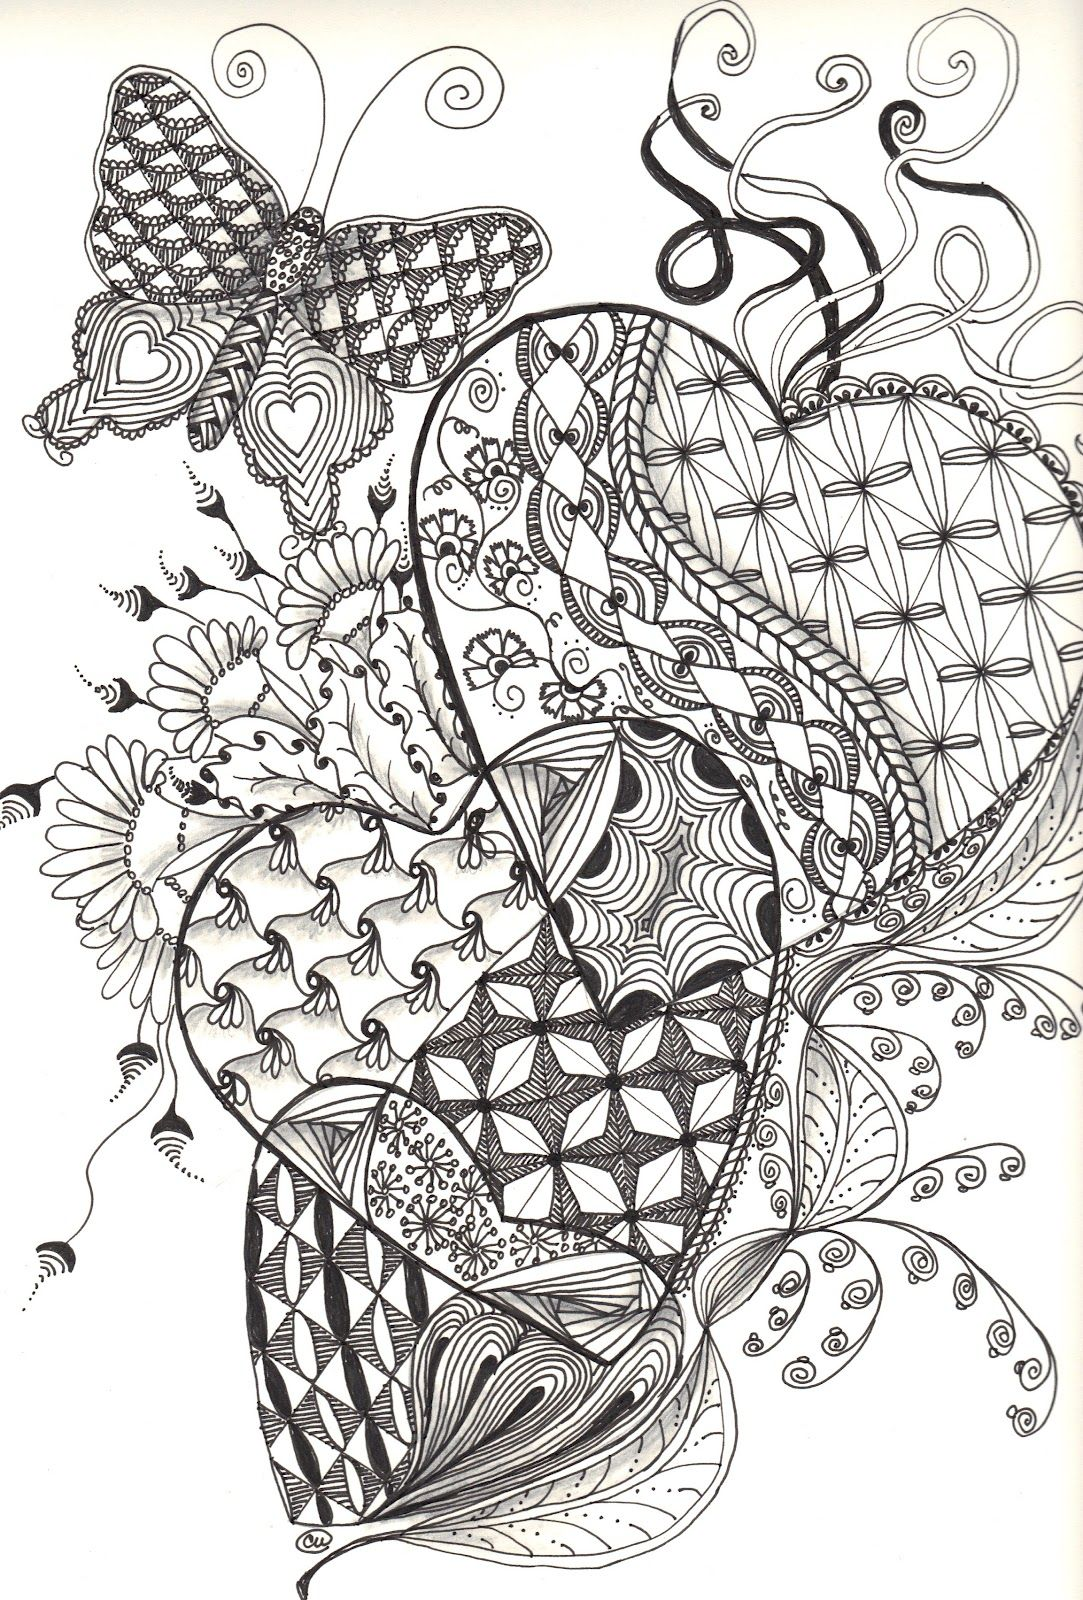 Butterfly and hearts coloring pages - Zentangle Hearts Instructions Posted By Cat Wilson At 5 47 Pm No Comments Coloring For Adultsadult Coloring Pagescoloring